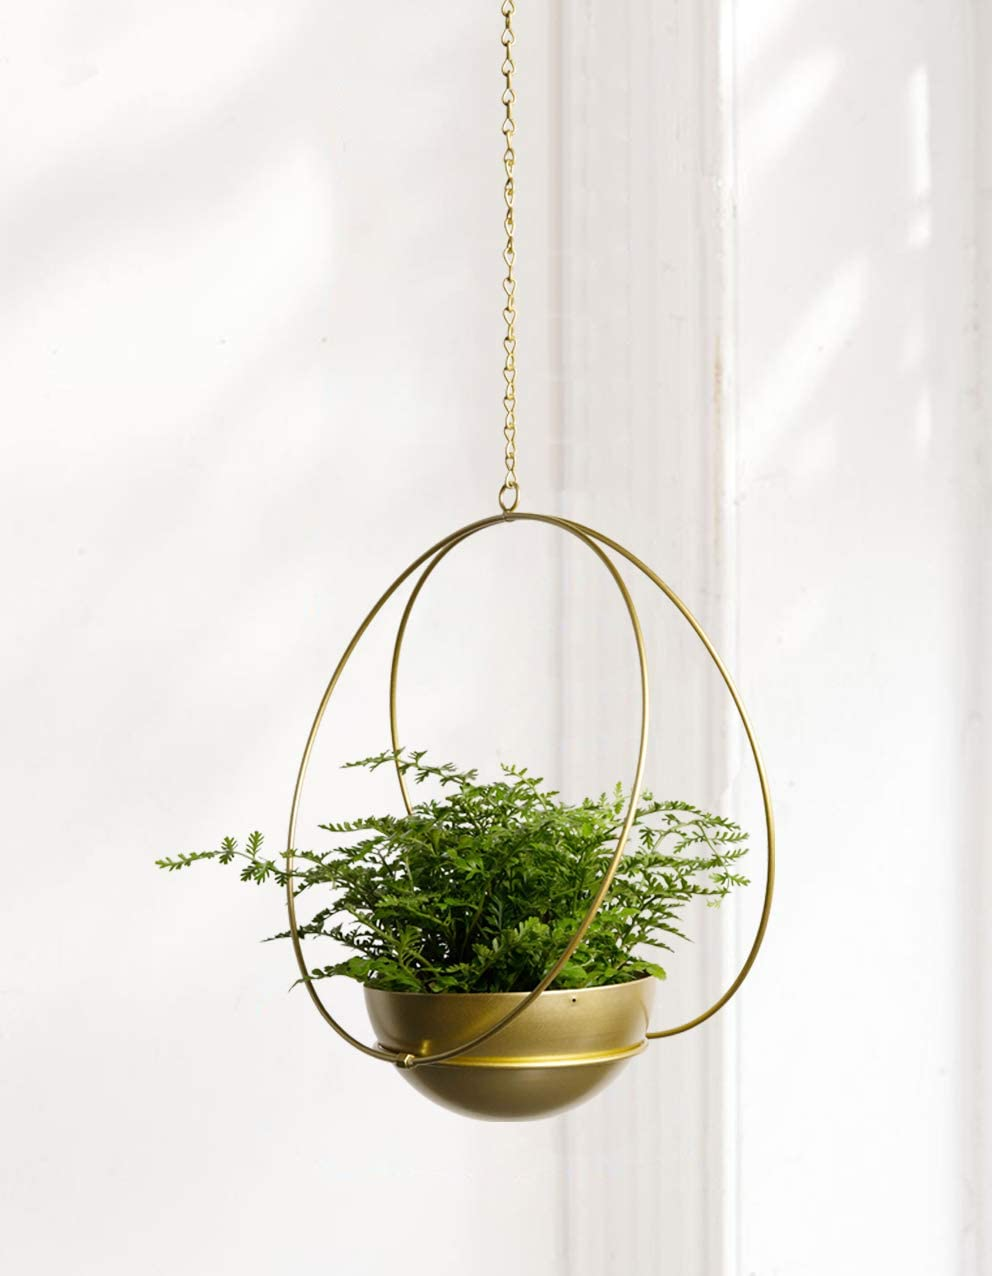 ABETREE Hanging Planter for Indoor Plants Metal Modern Wall and Ceiling Planter Minimalist Small Flower Pot Holder Hanger for Home Decor (Gold)